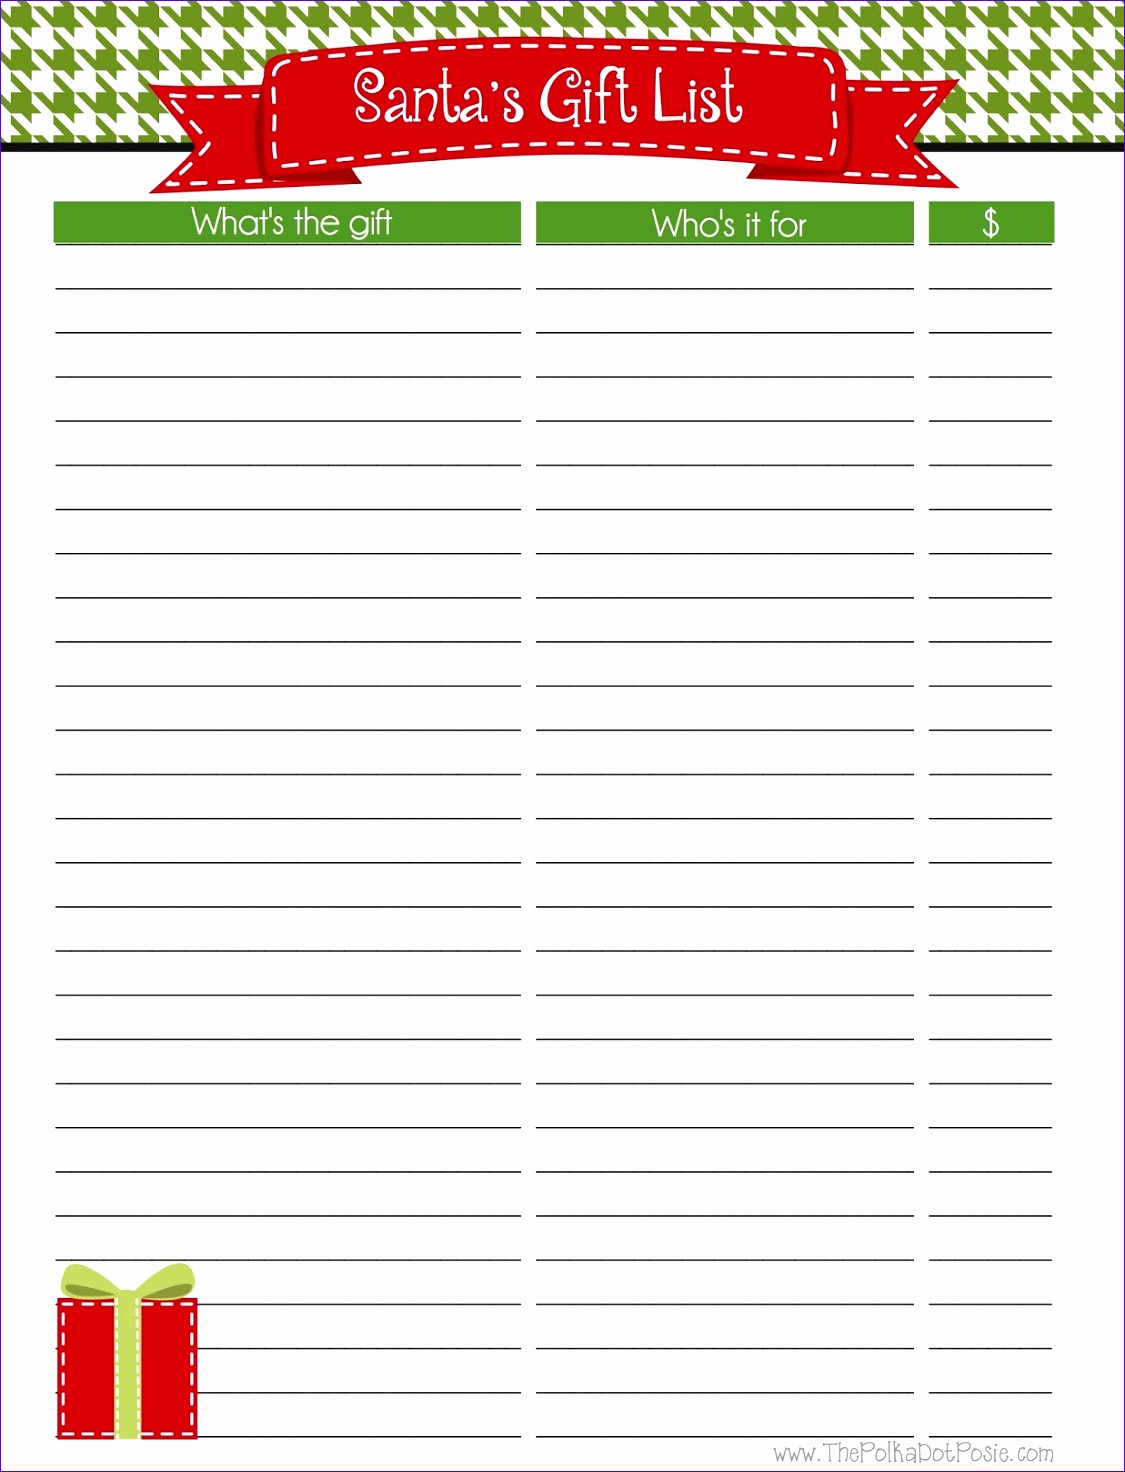 11 Excel Shopping List Template - ExcelTemplates - ExcelTemplates